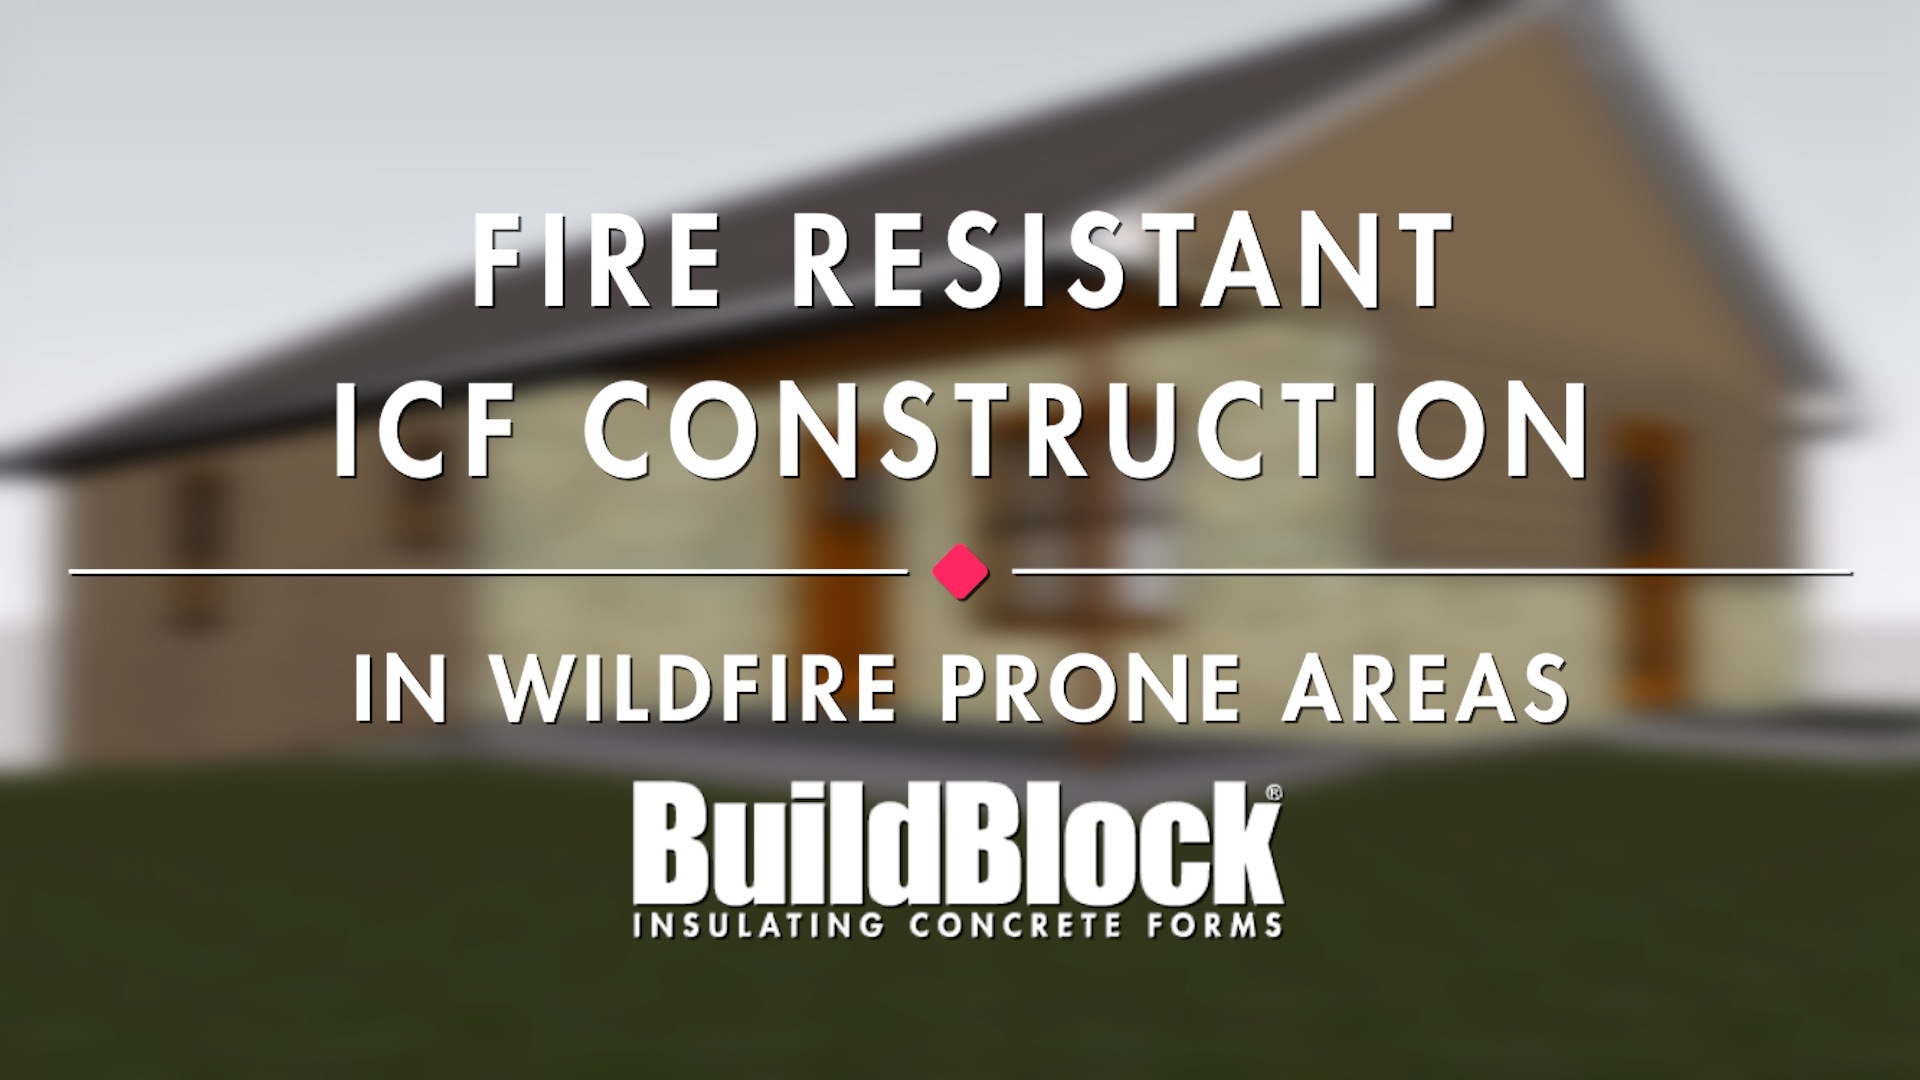 Video: How To Build A Fire Resistant ICF House